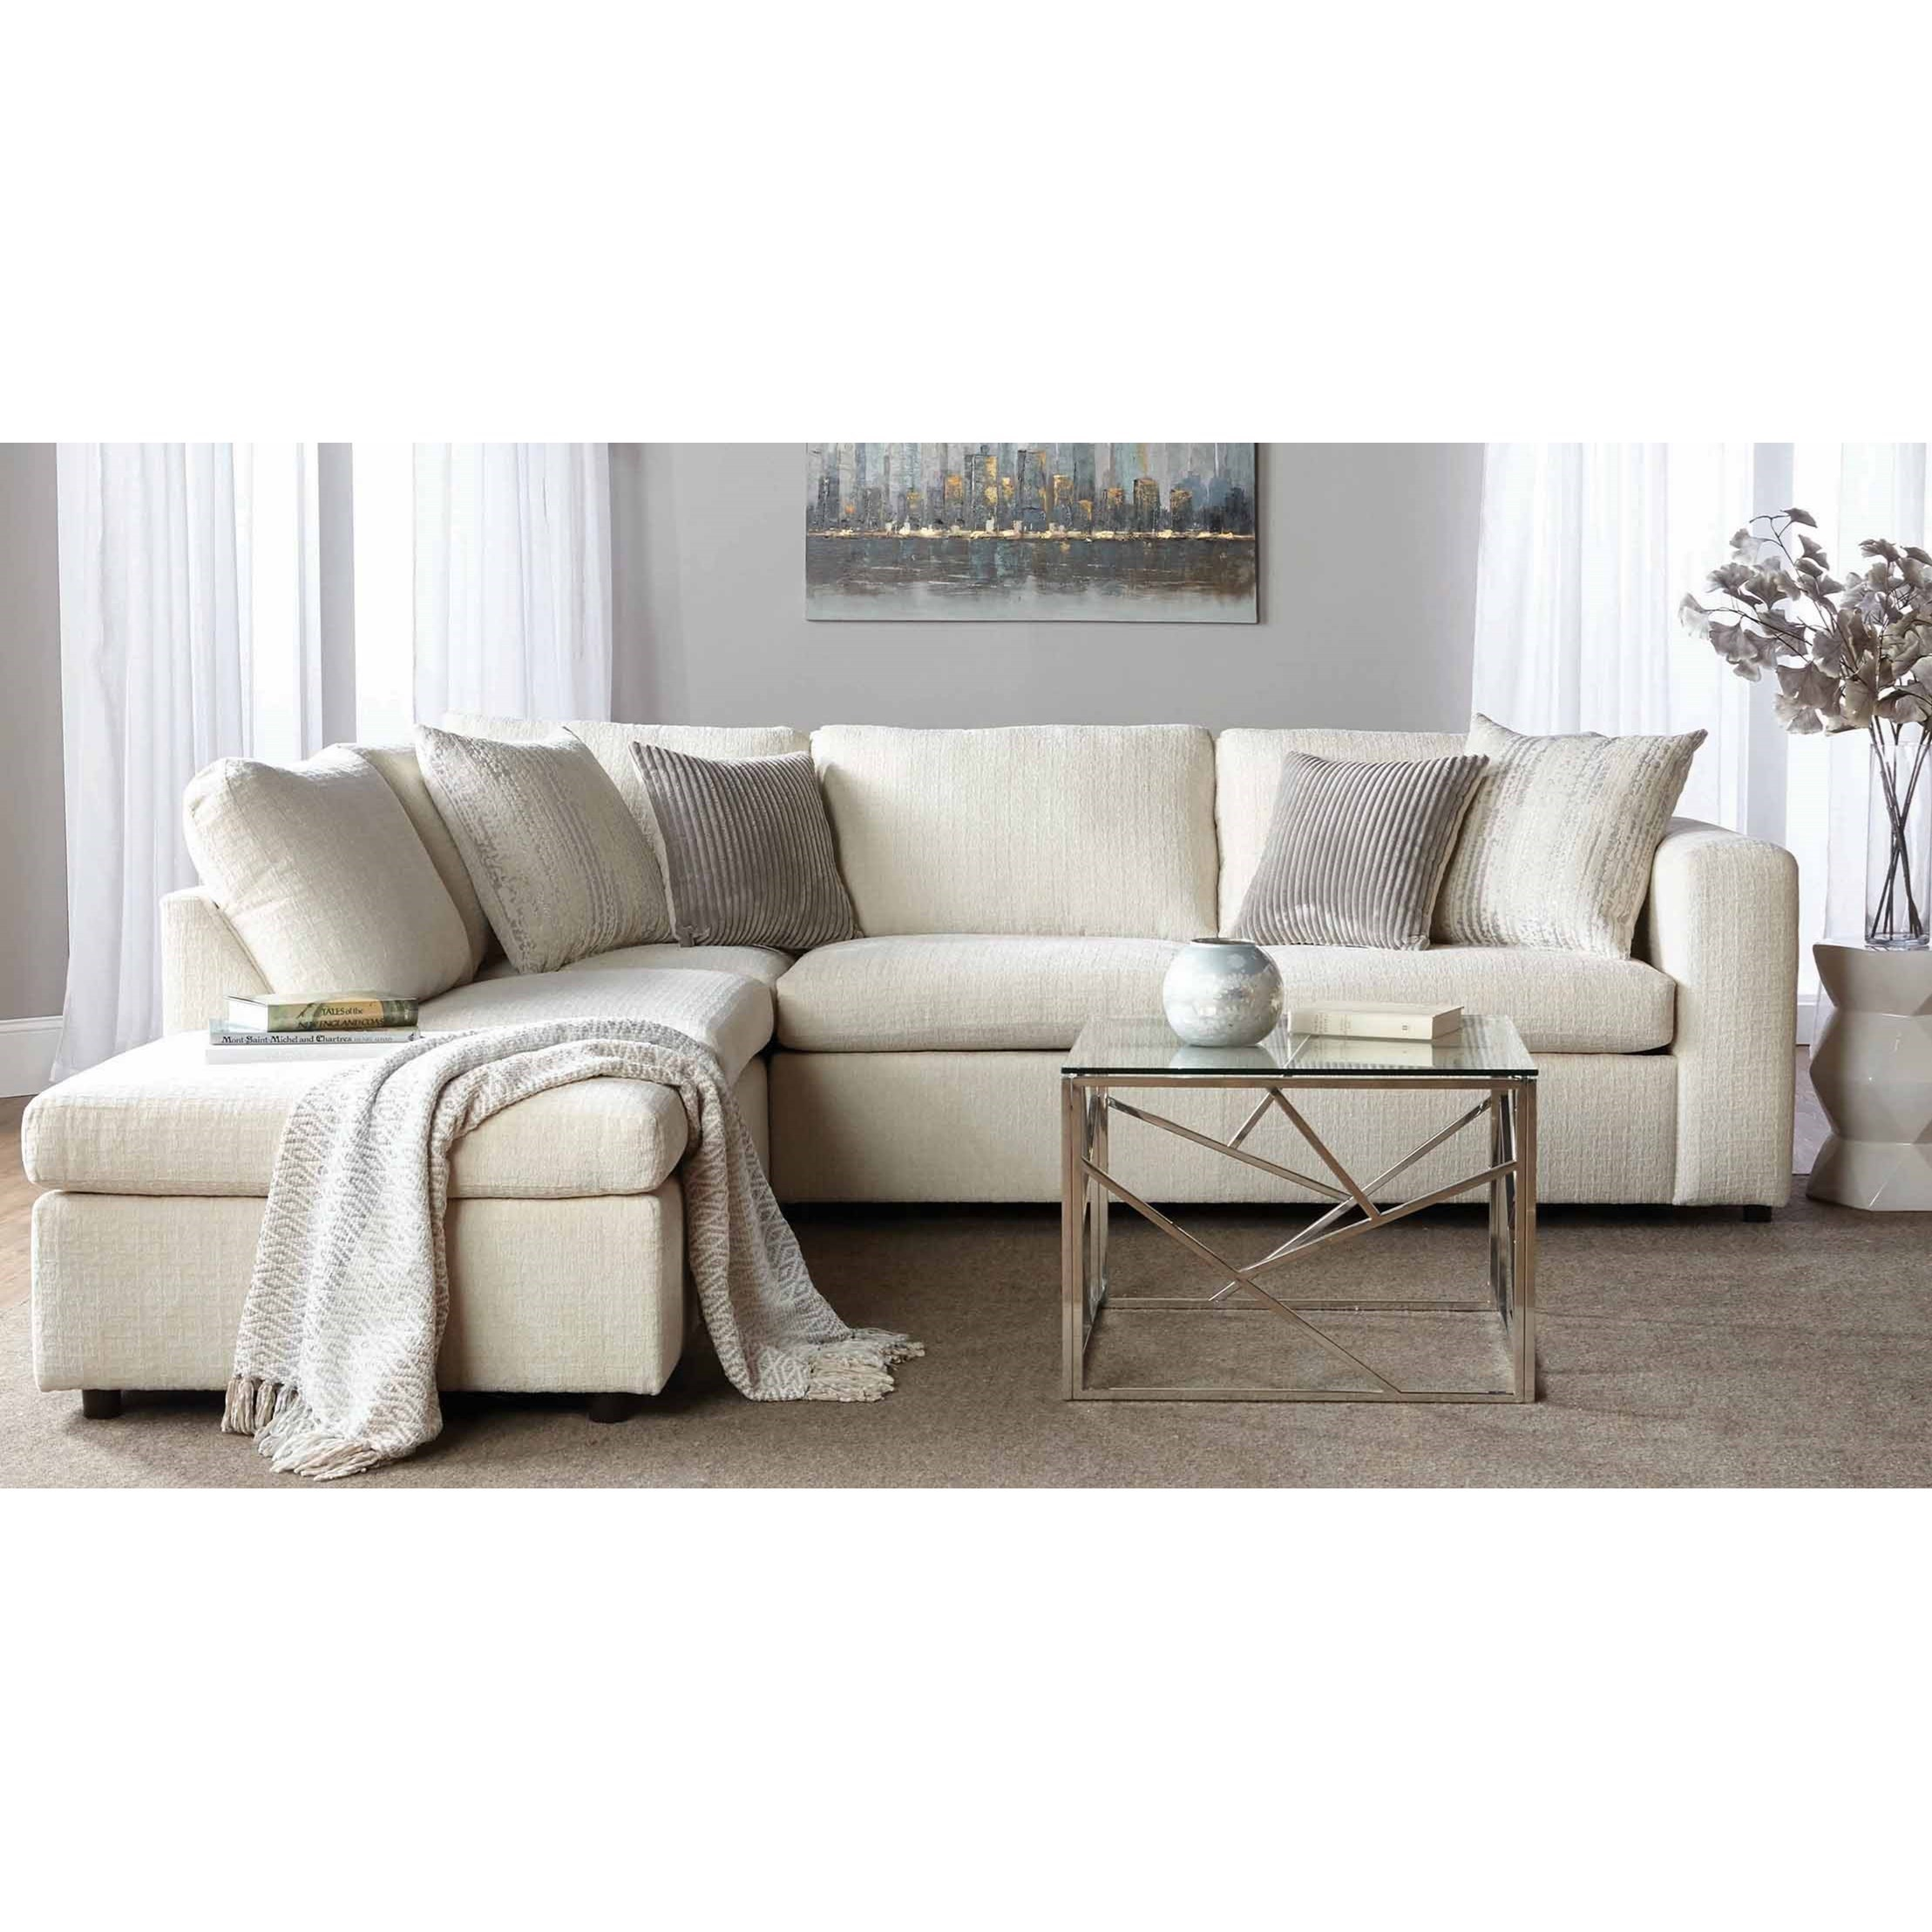 serta upholstery by hughes furniture 1100 casual contemporary rh stoneycreekfurniture com